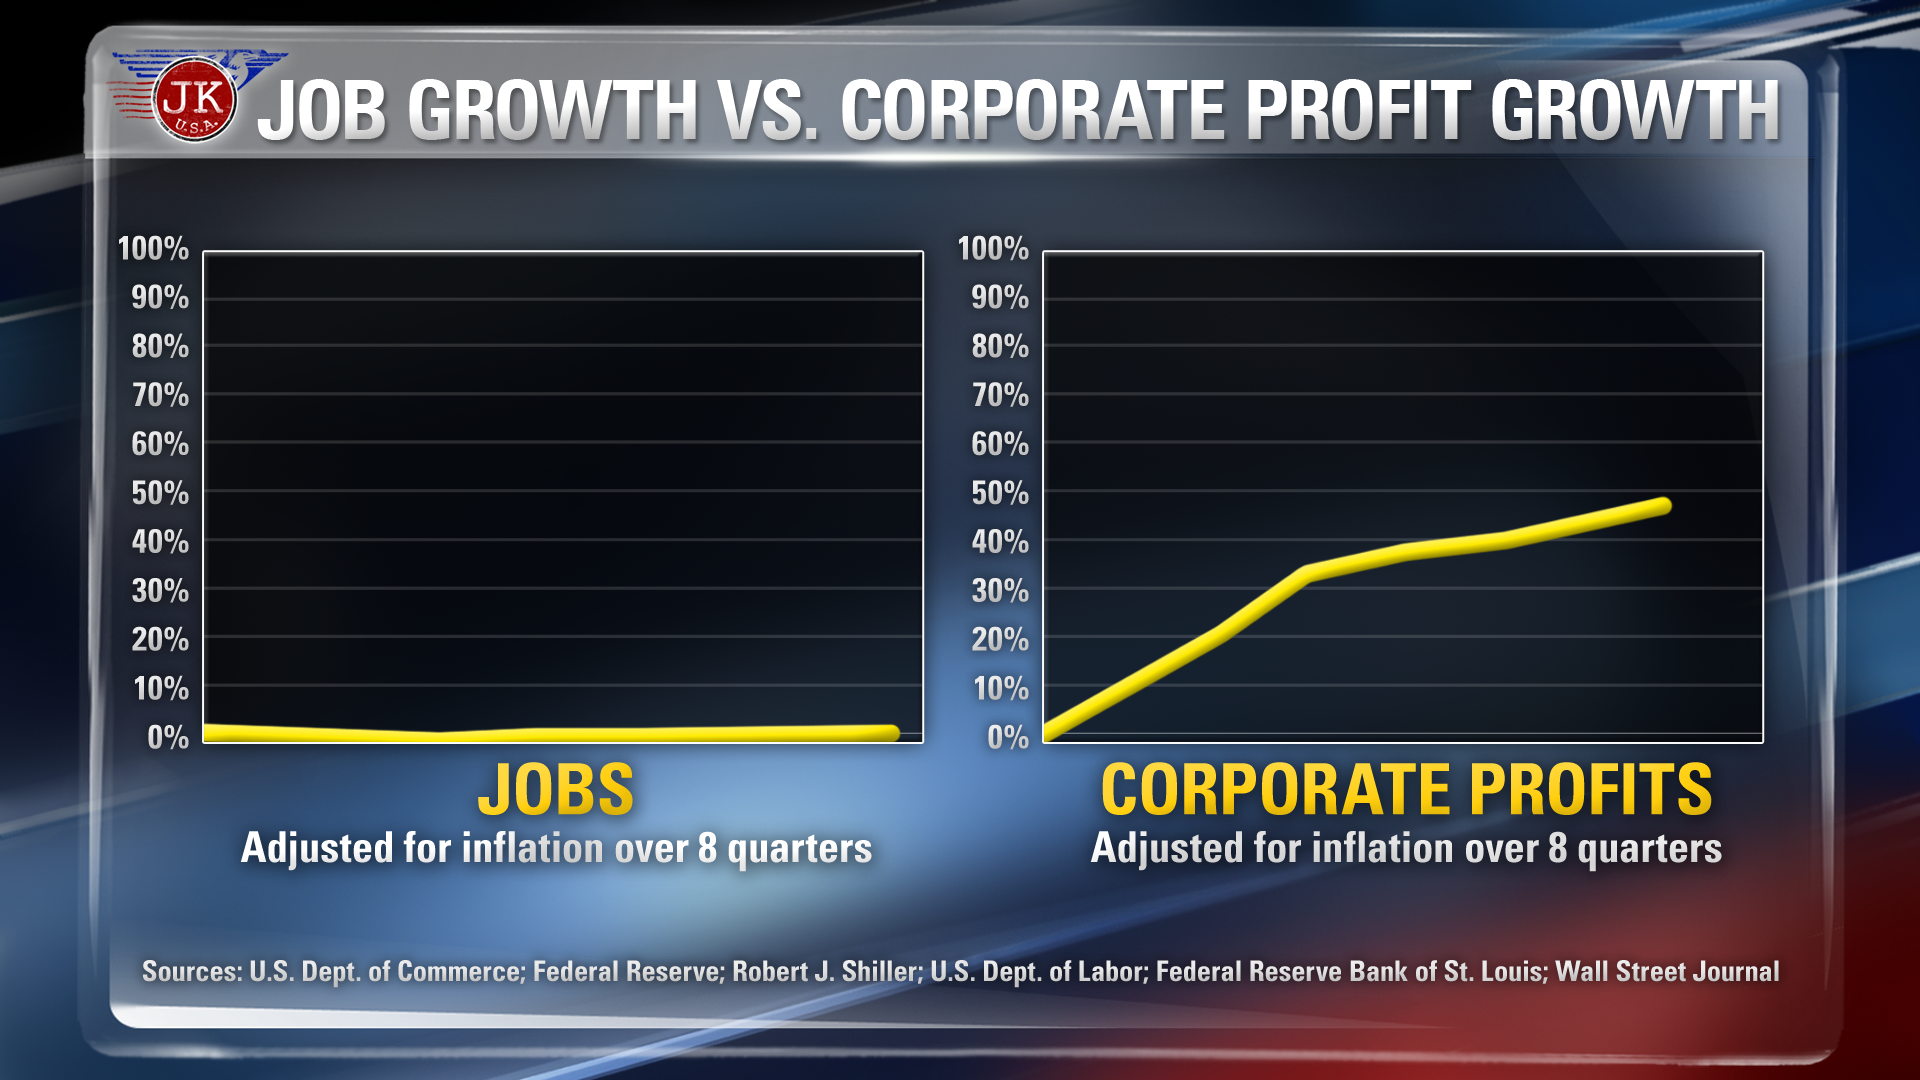 Job Growth vs. Corporate Profit Growth